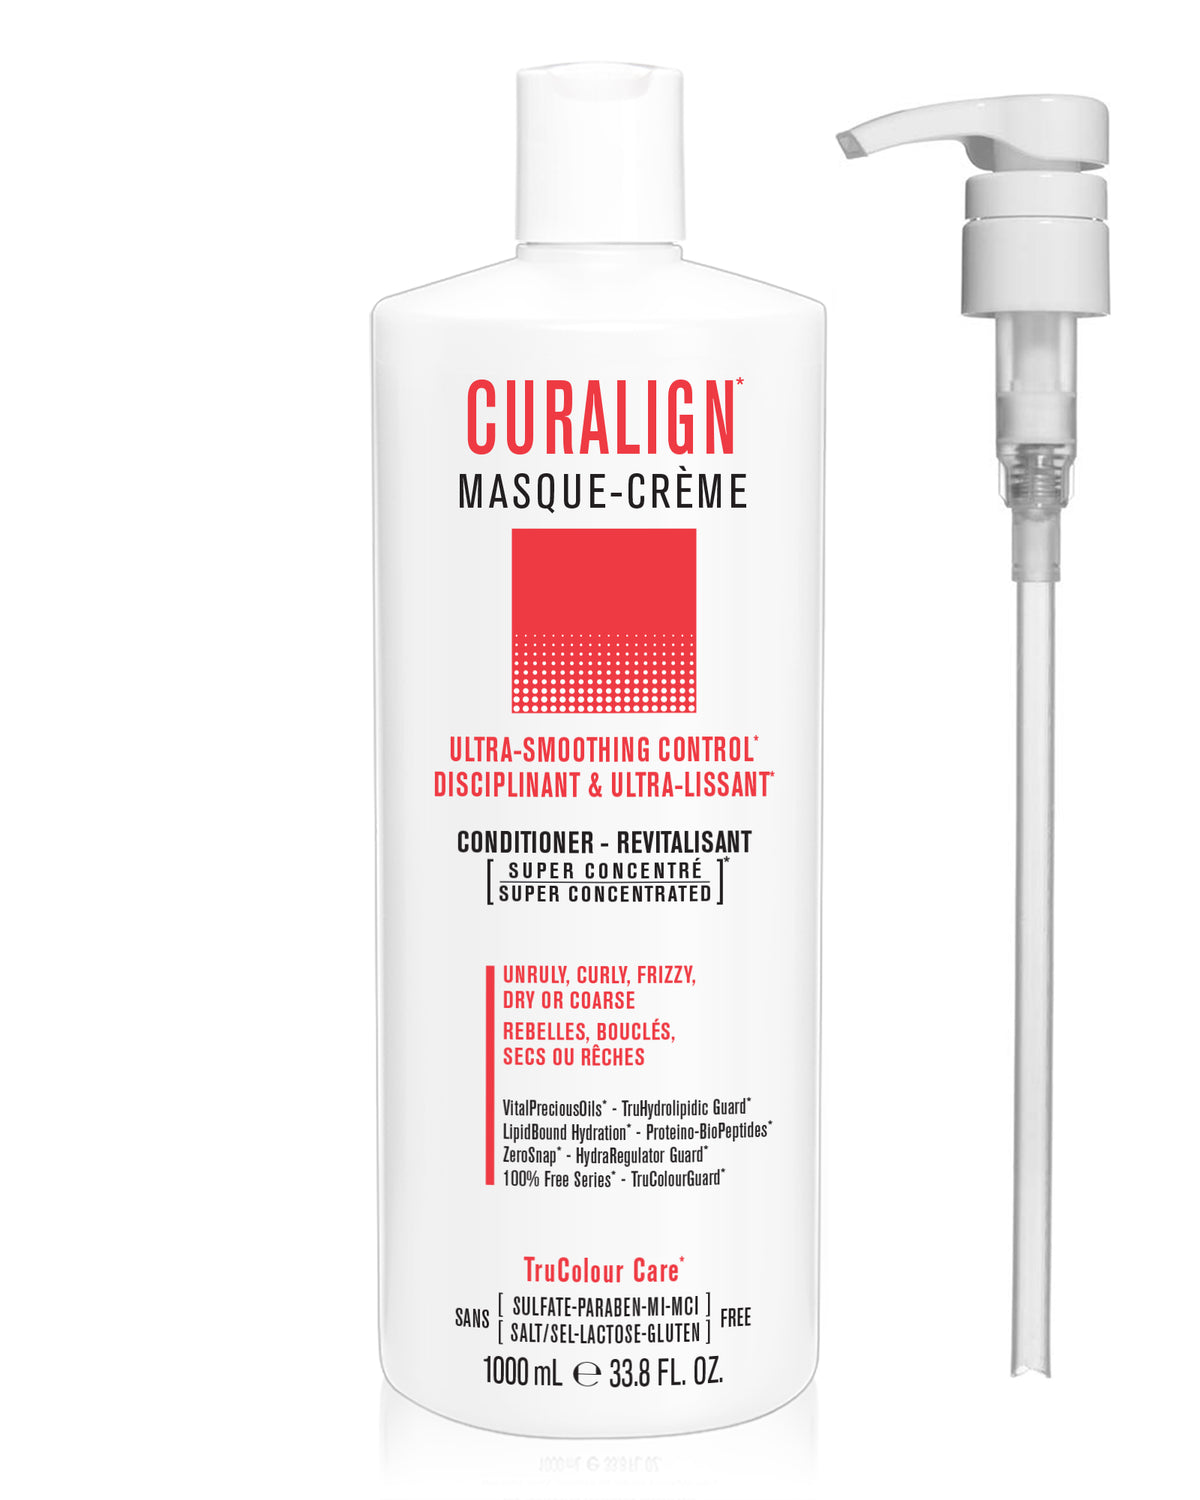 CURALIGN Ultra-Smoothing Control Masque-Creme (conditioner) - SNOBGIRLS Canada